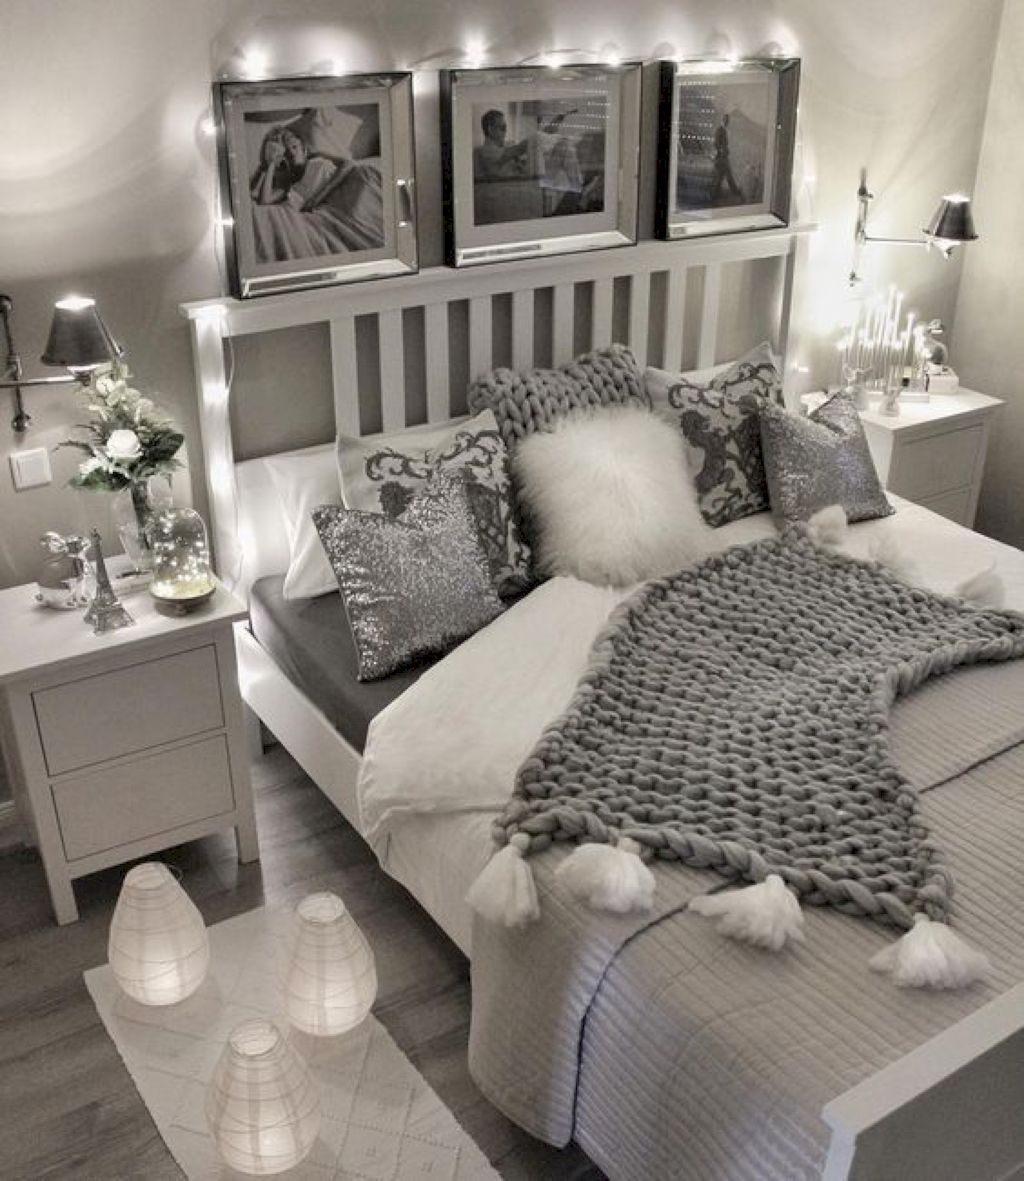 70 Cozy Apartment Bedroom Ideas Woman Bedroom Apartment Bedroom Decor Small Room Bedroom